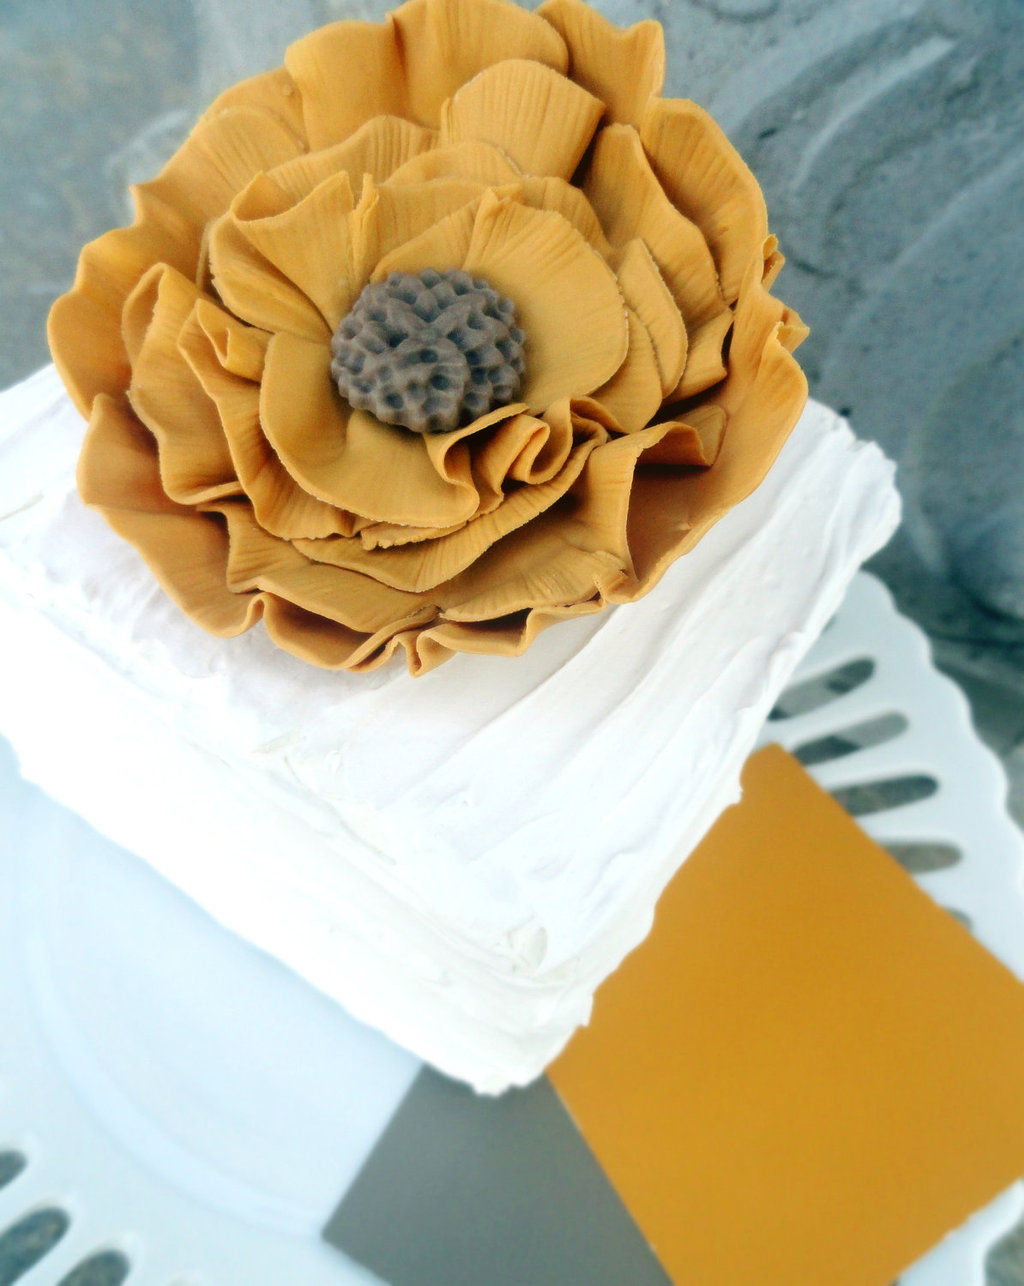 fondant wedding finds to add sweetness to handmade weddings ruffled flower